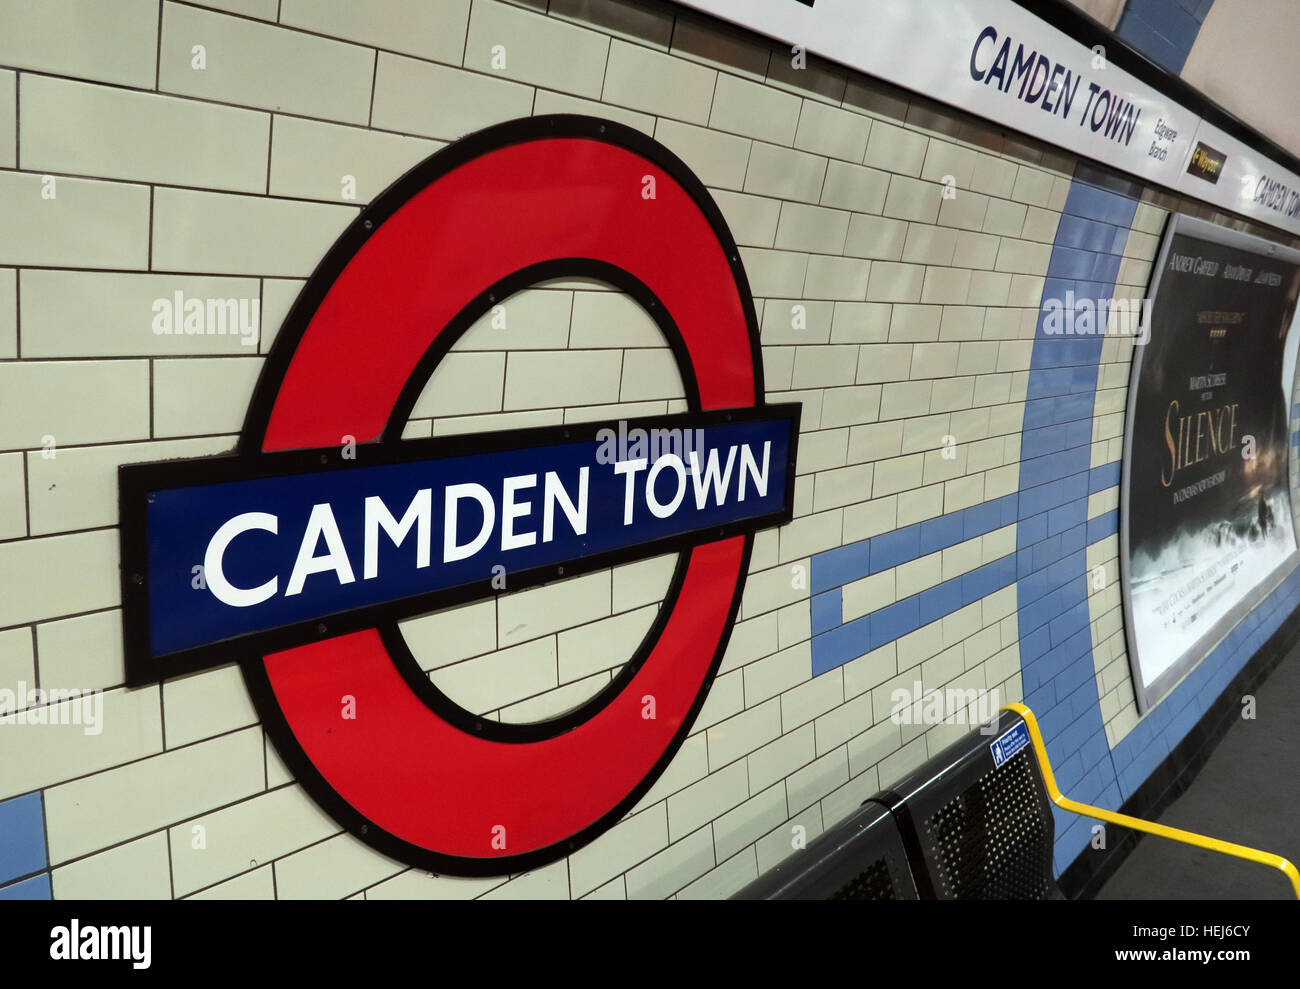 Camden Town Station at Night, North London, England, UK - Stock Image